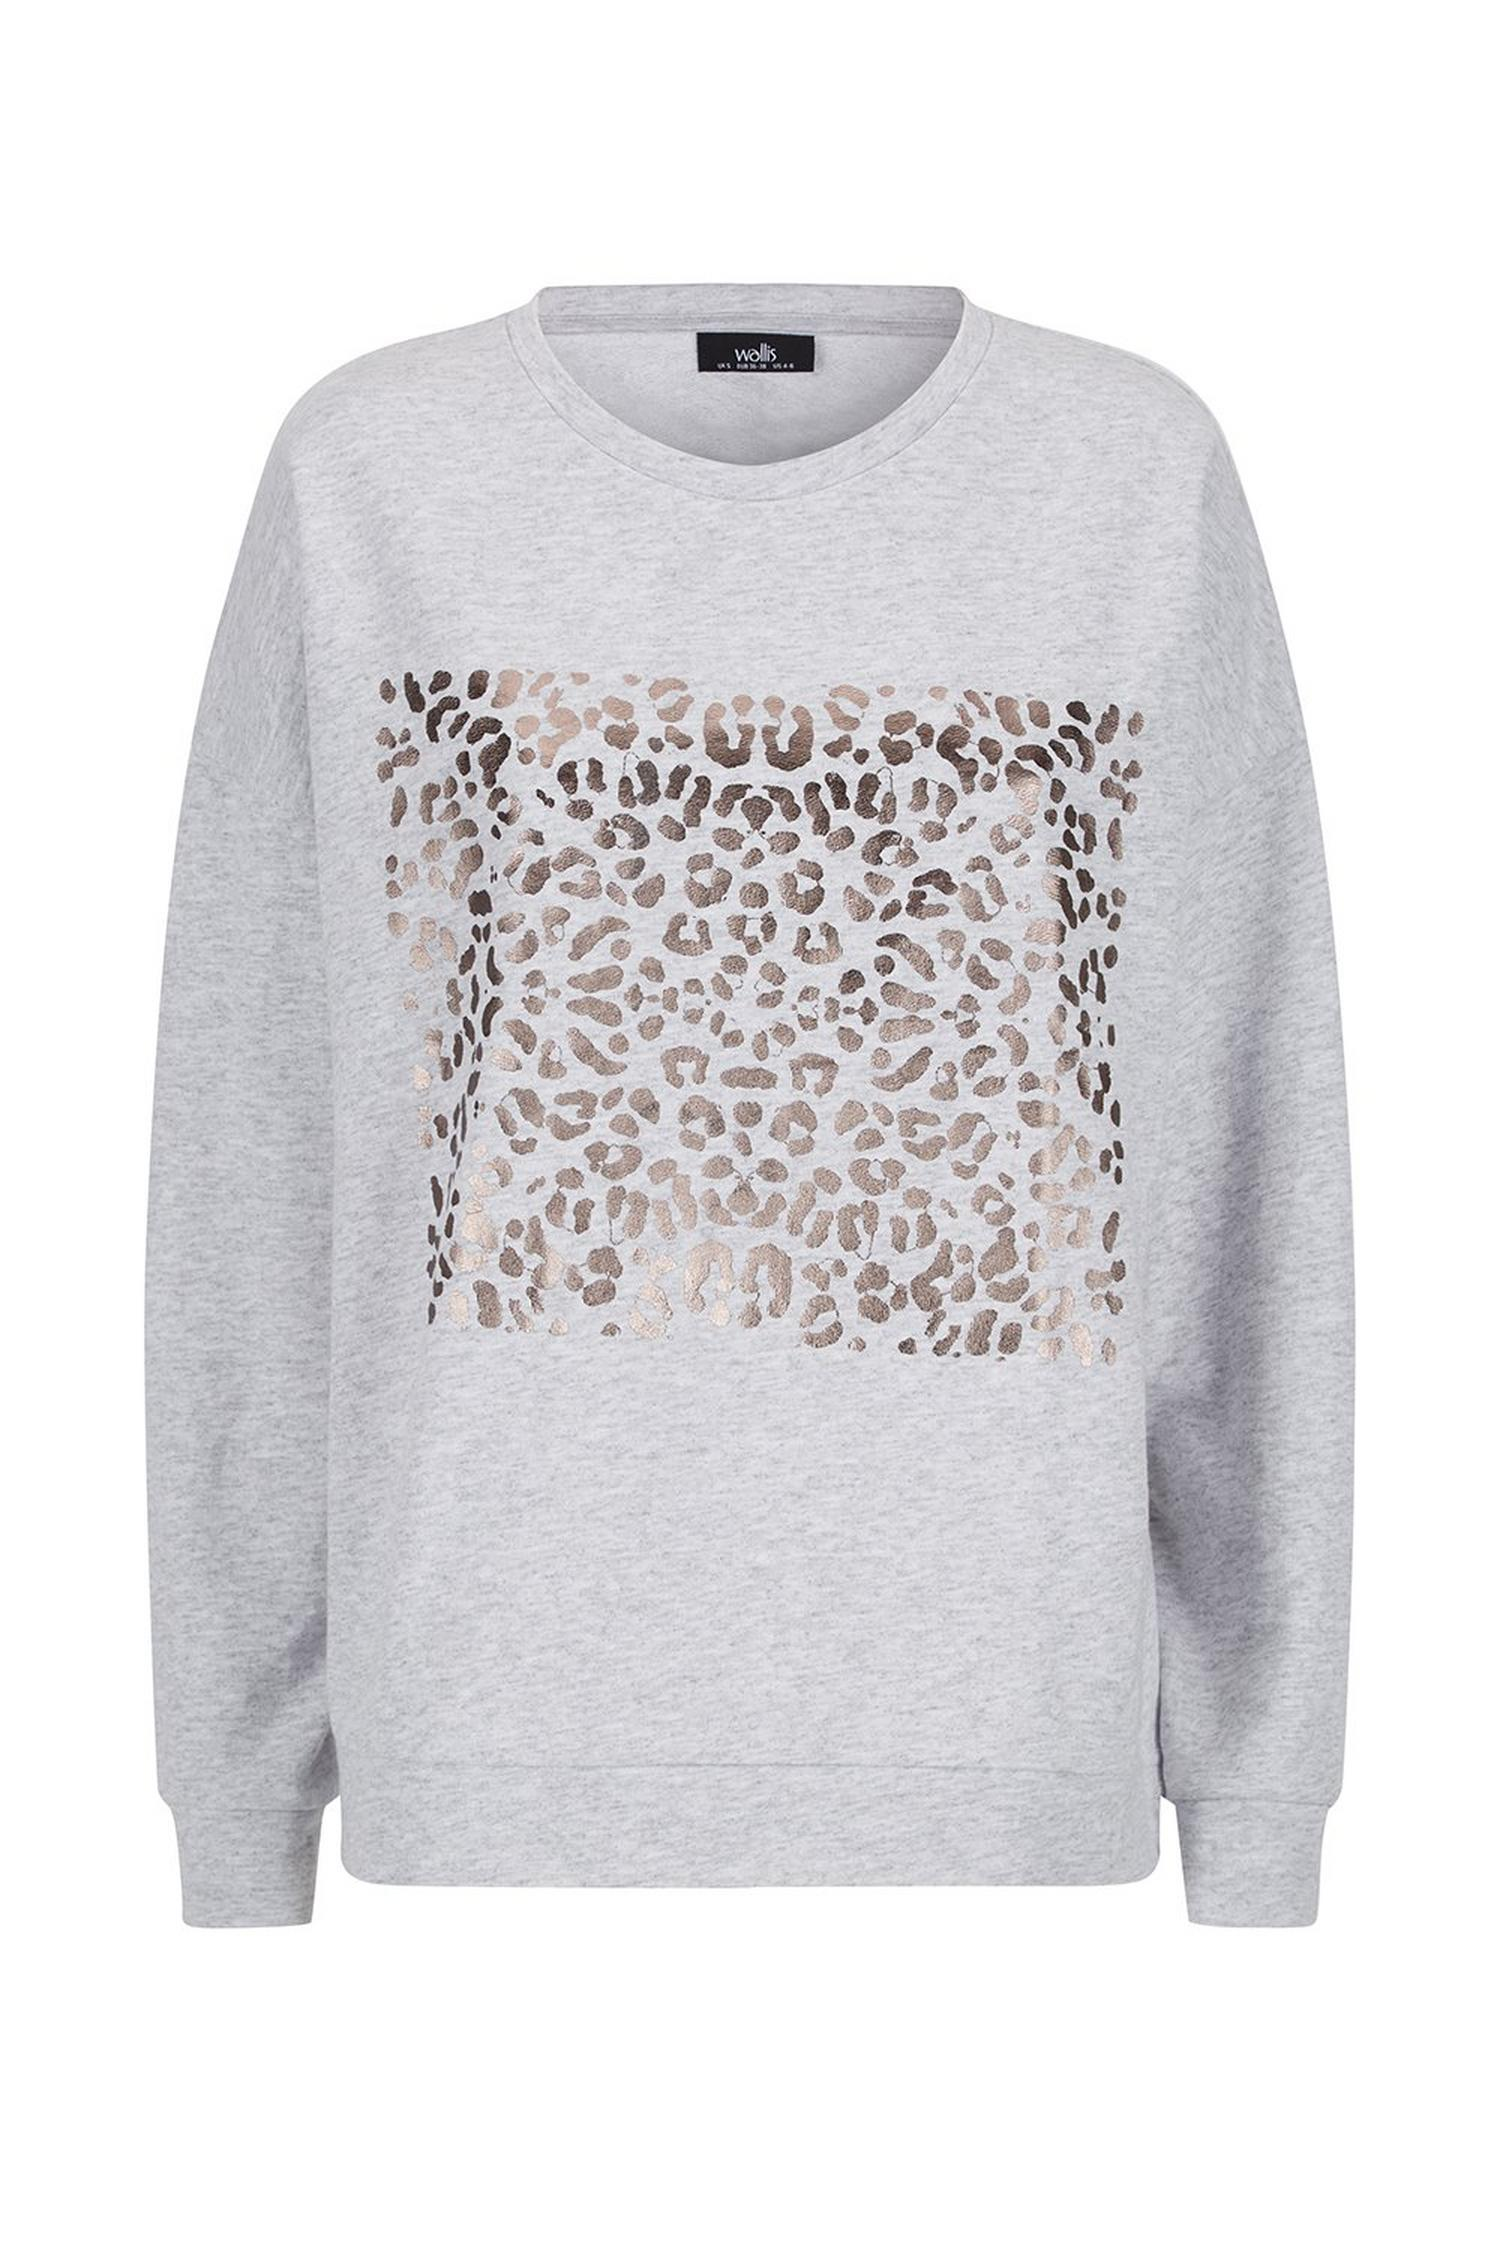 131 Grey Metallic Animal Print Jumper image number 3